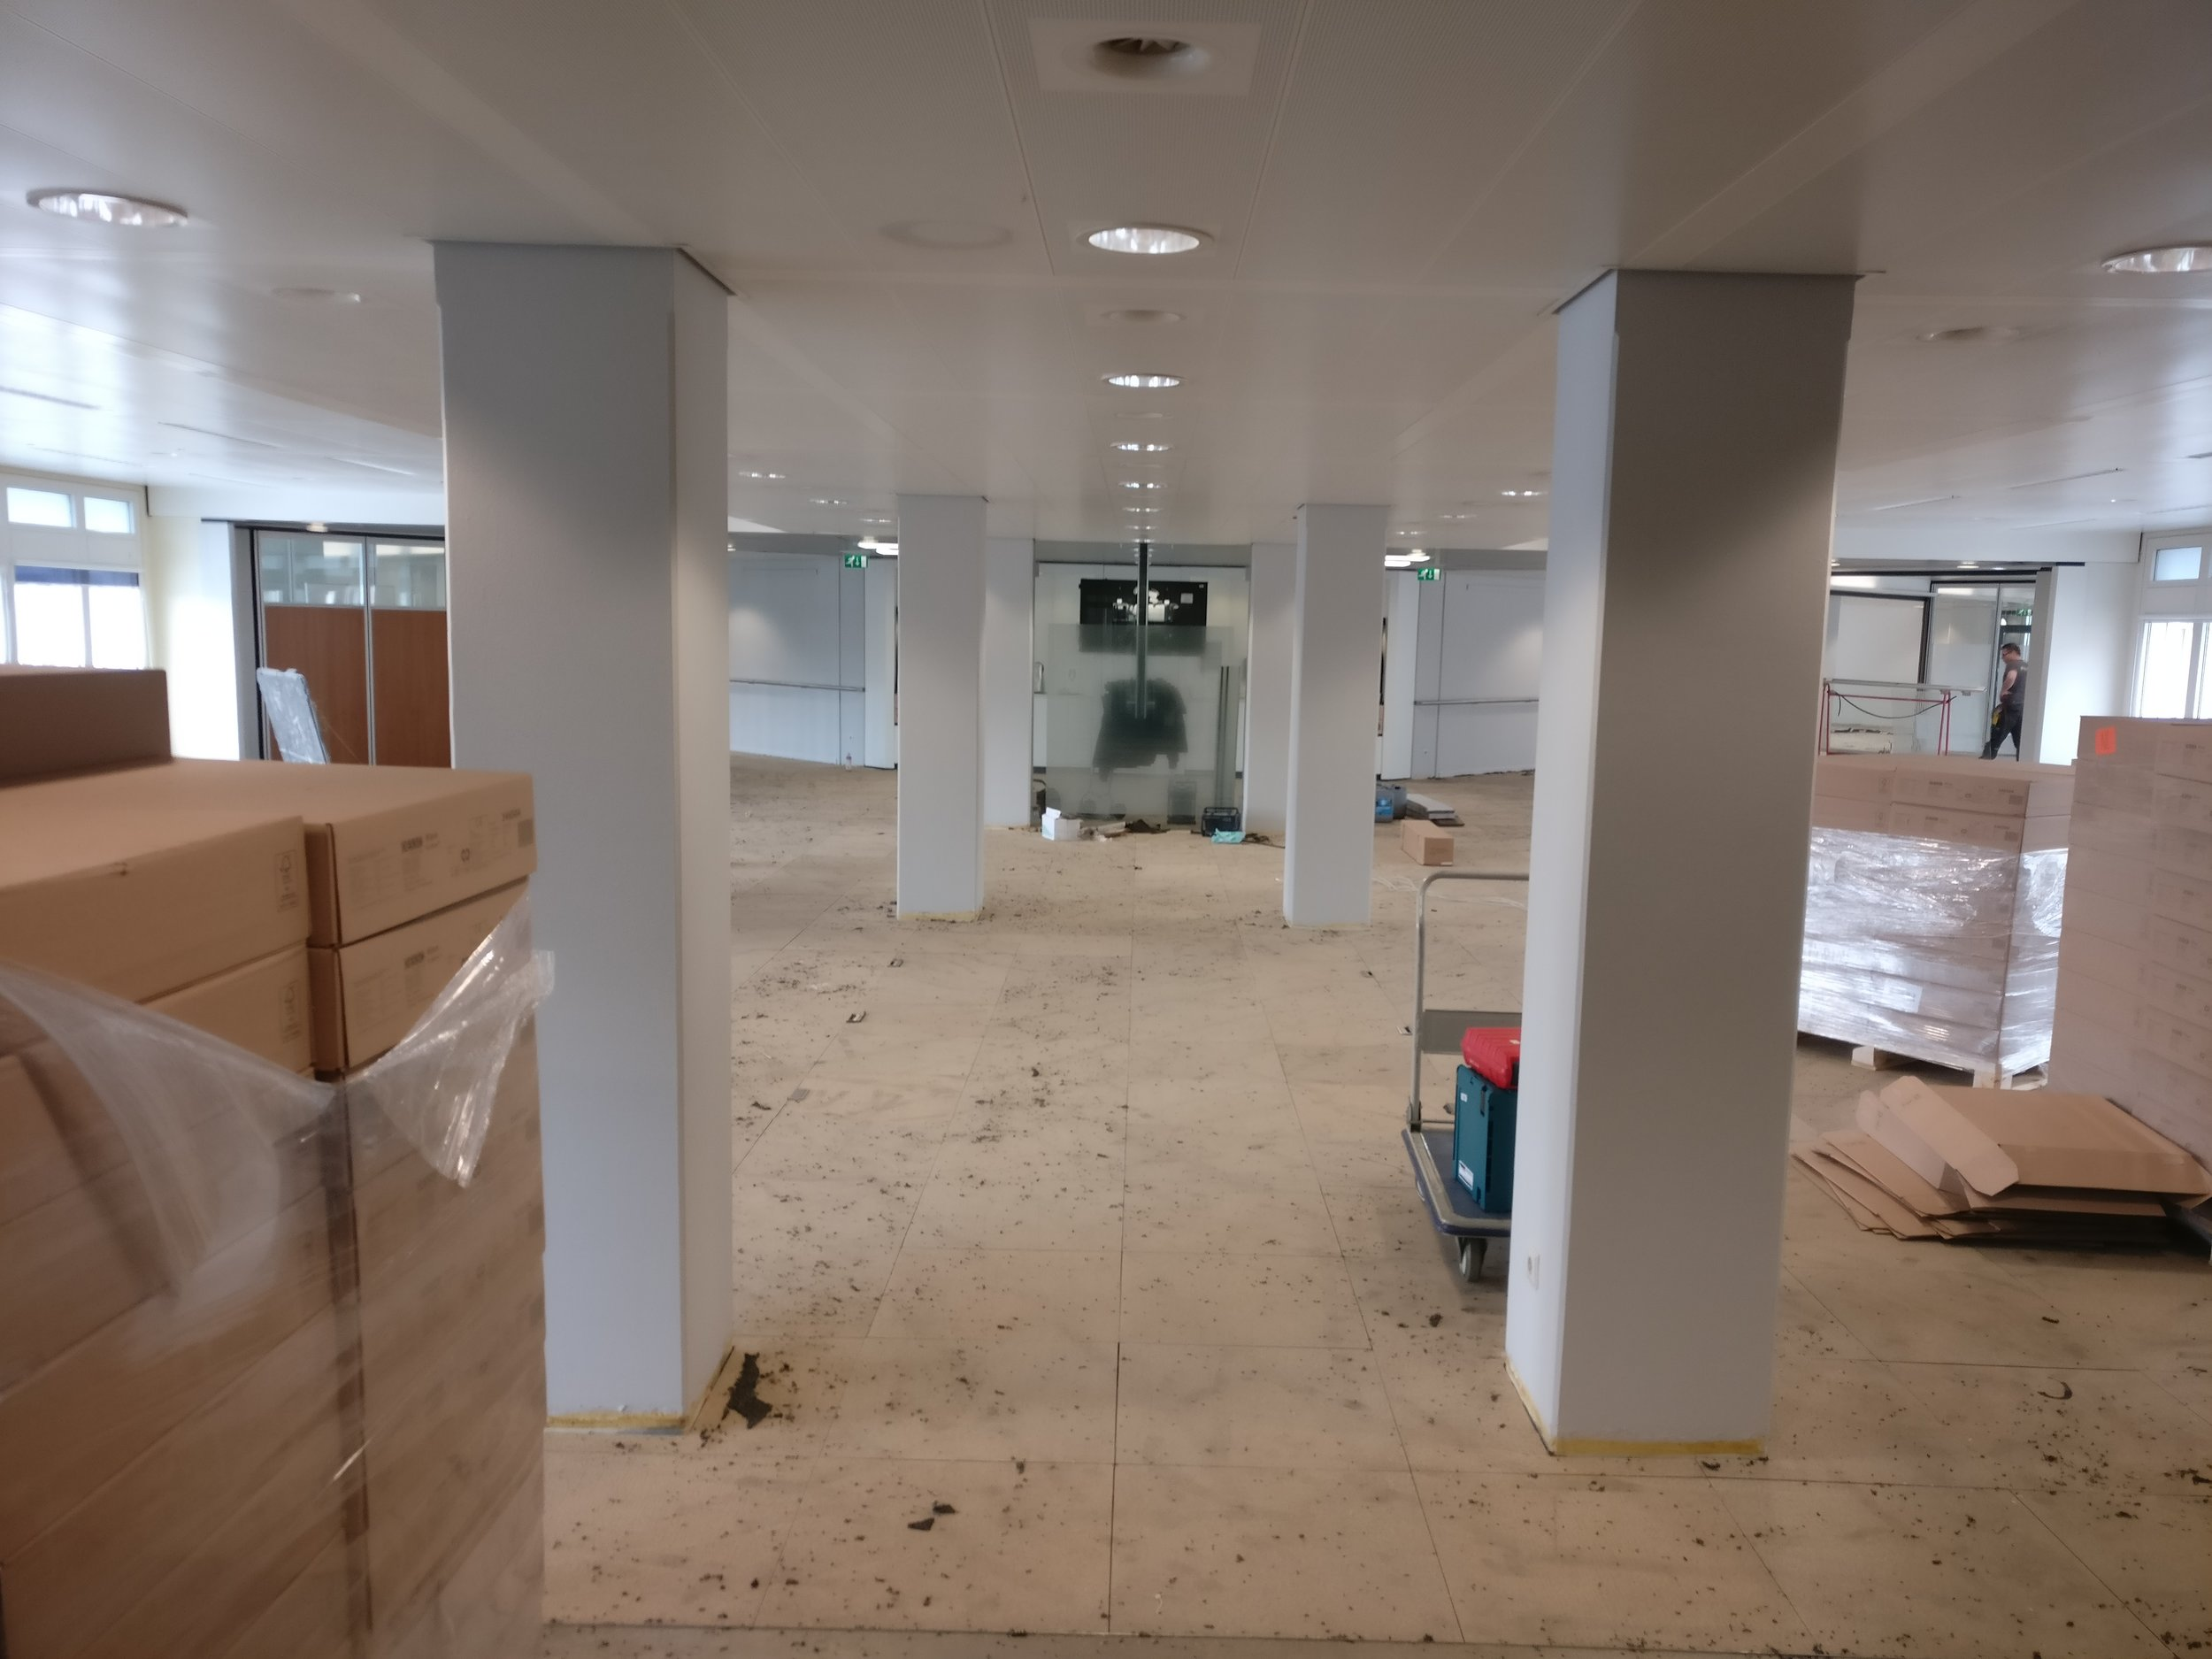 Activity Based Working  refurbishment at the ABN AMRO bank